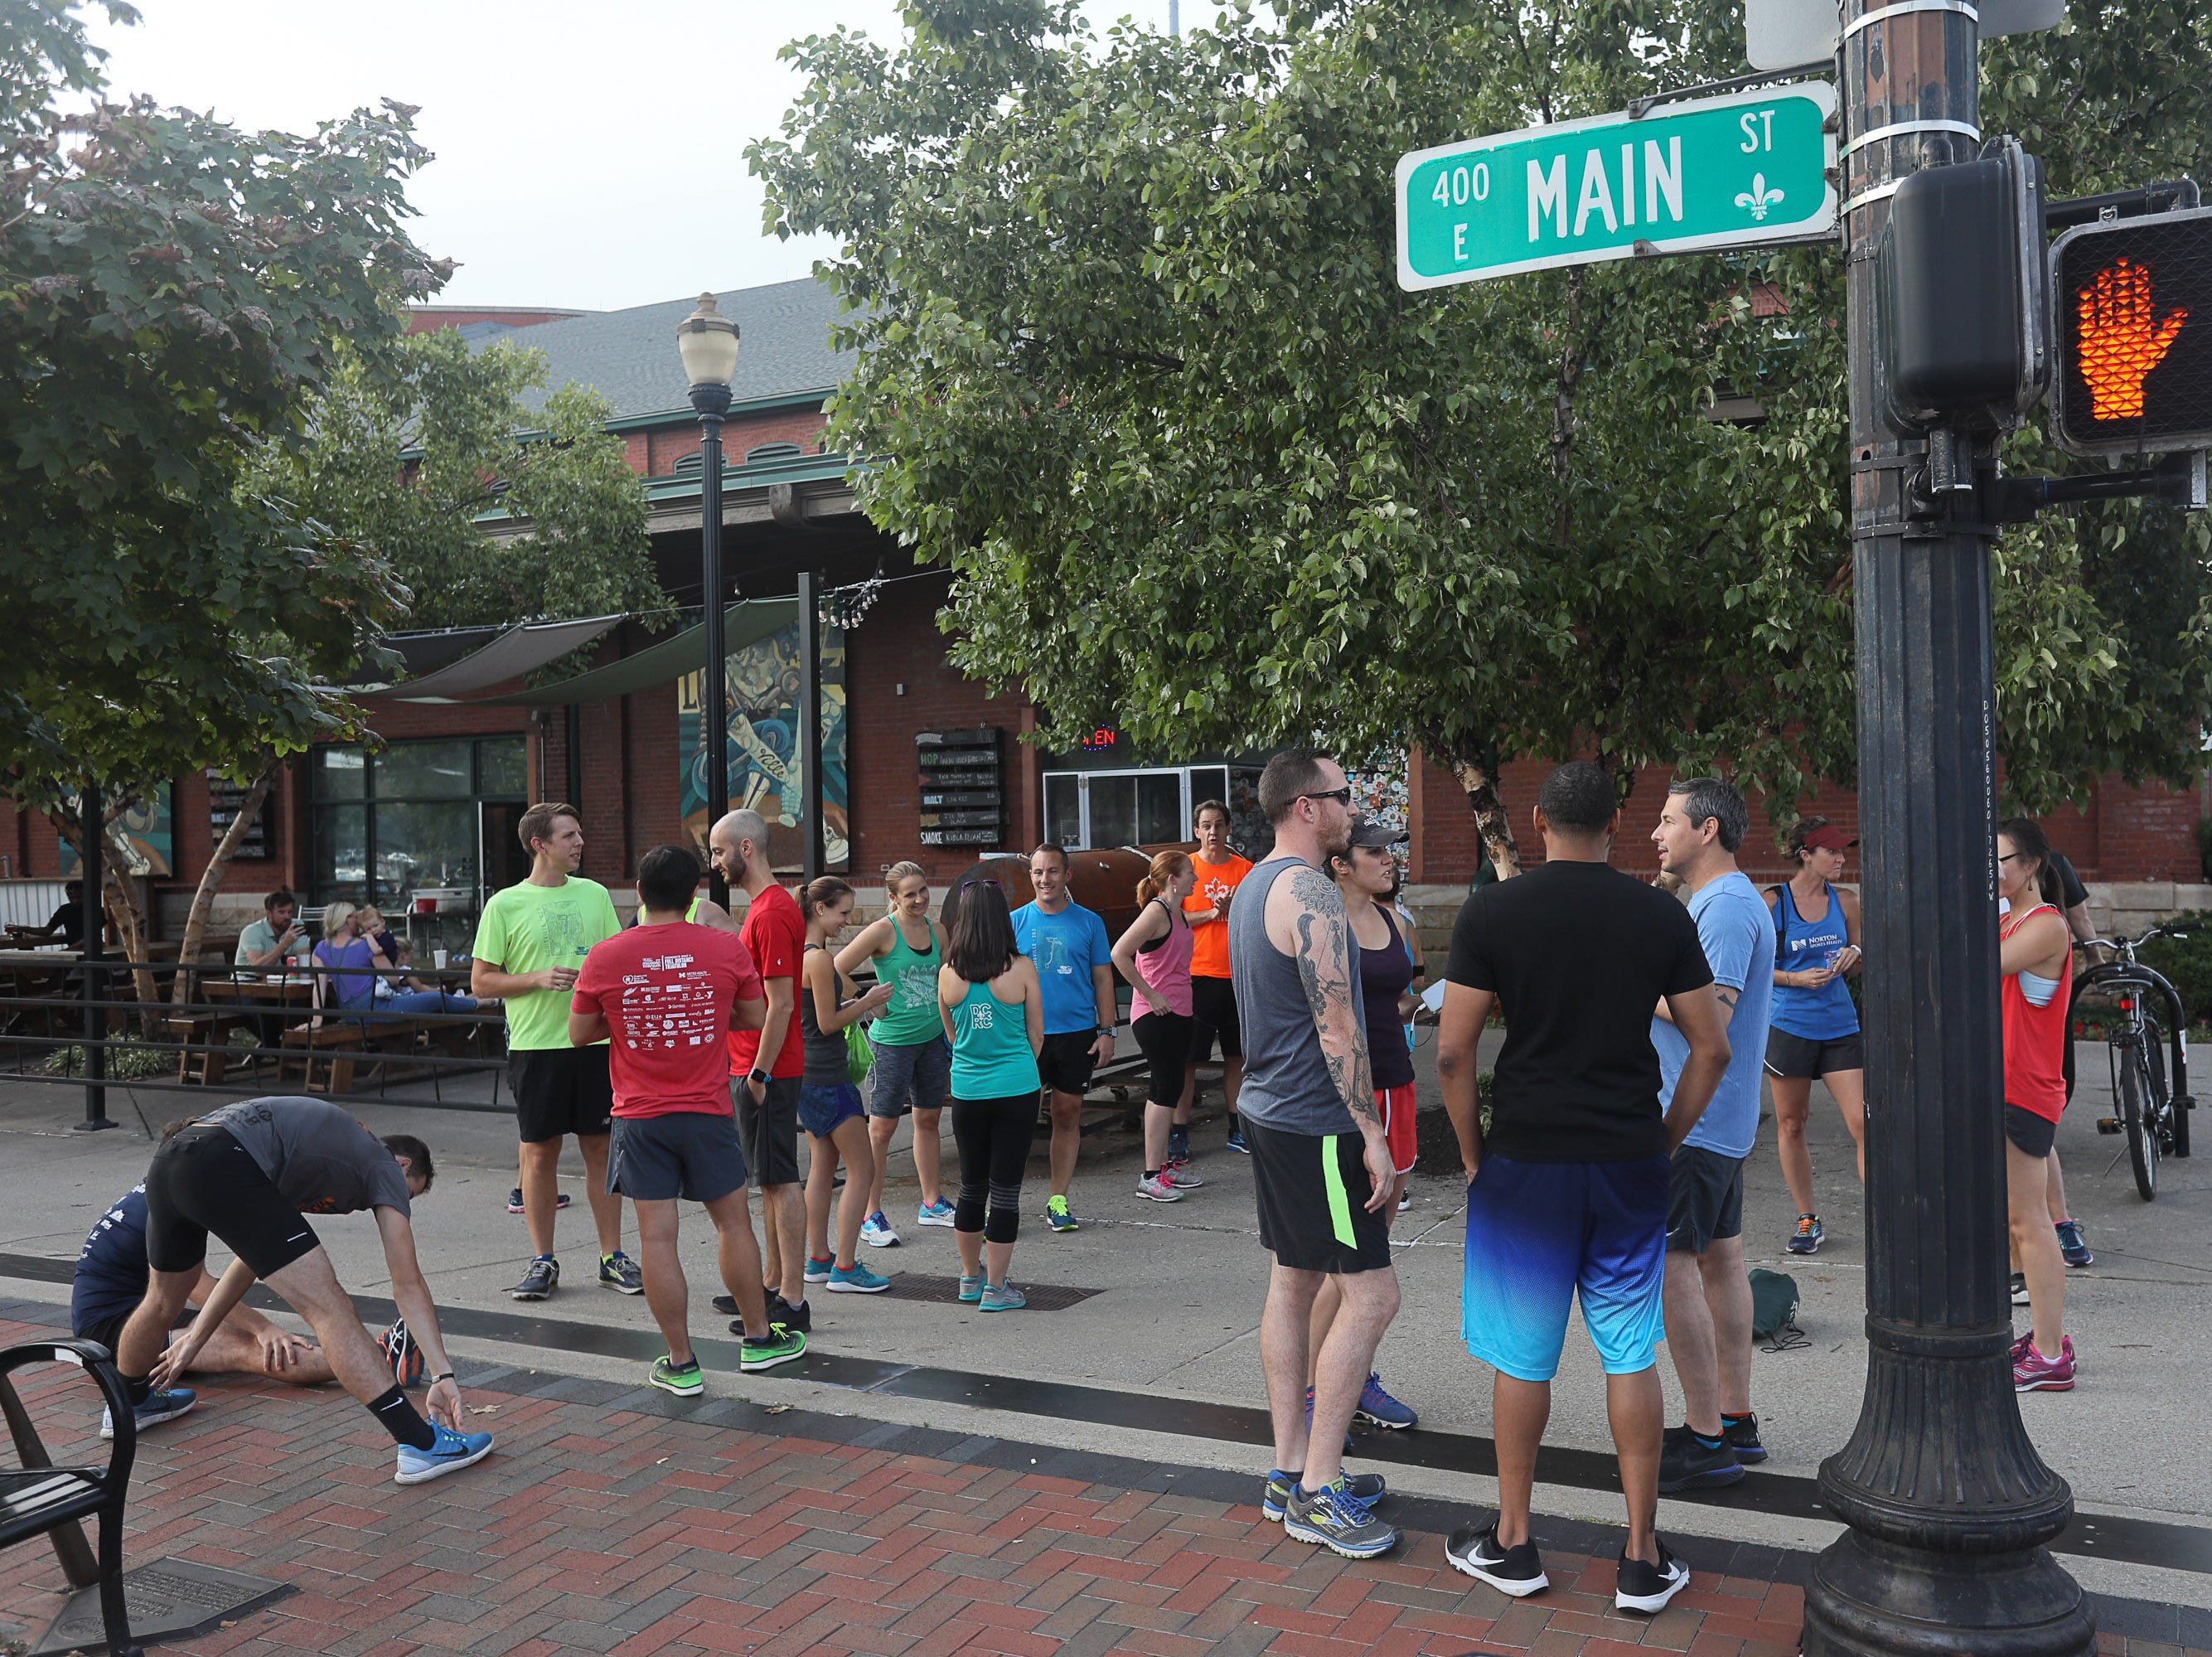 Scene during a Derby City Run Club event at Against the Grain Brewery in Louisville, Ky. Sept. 12, 2018